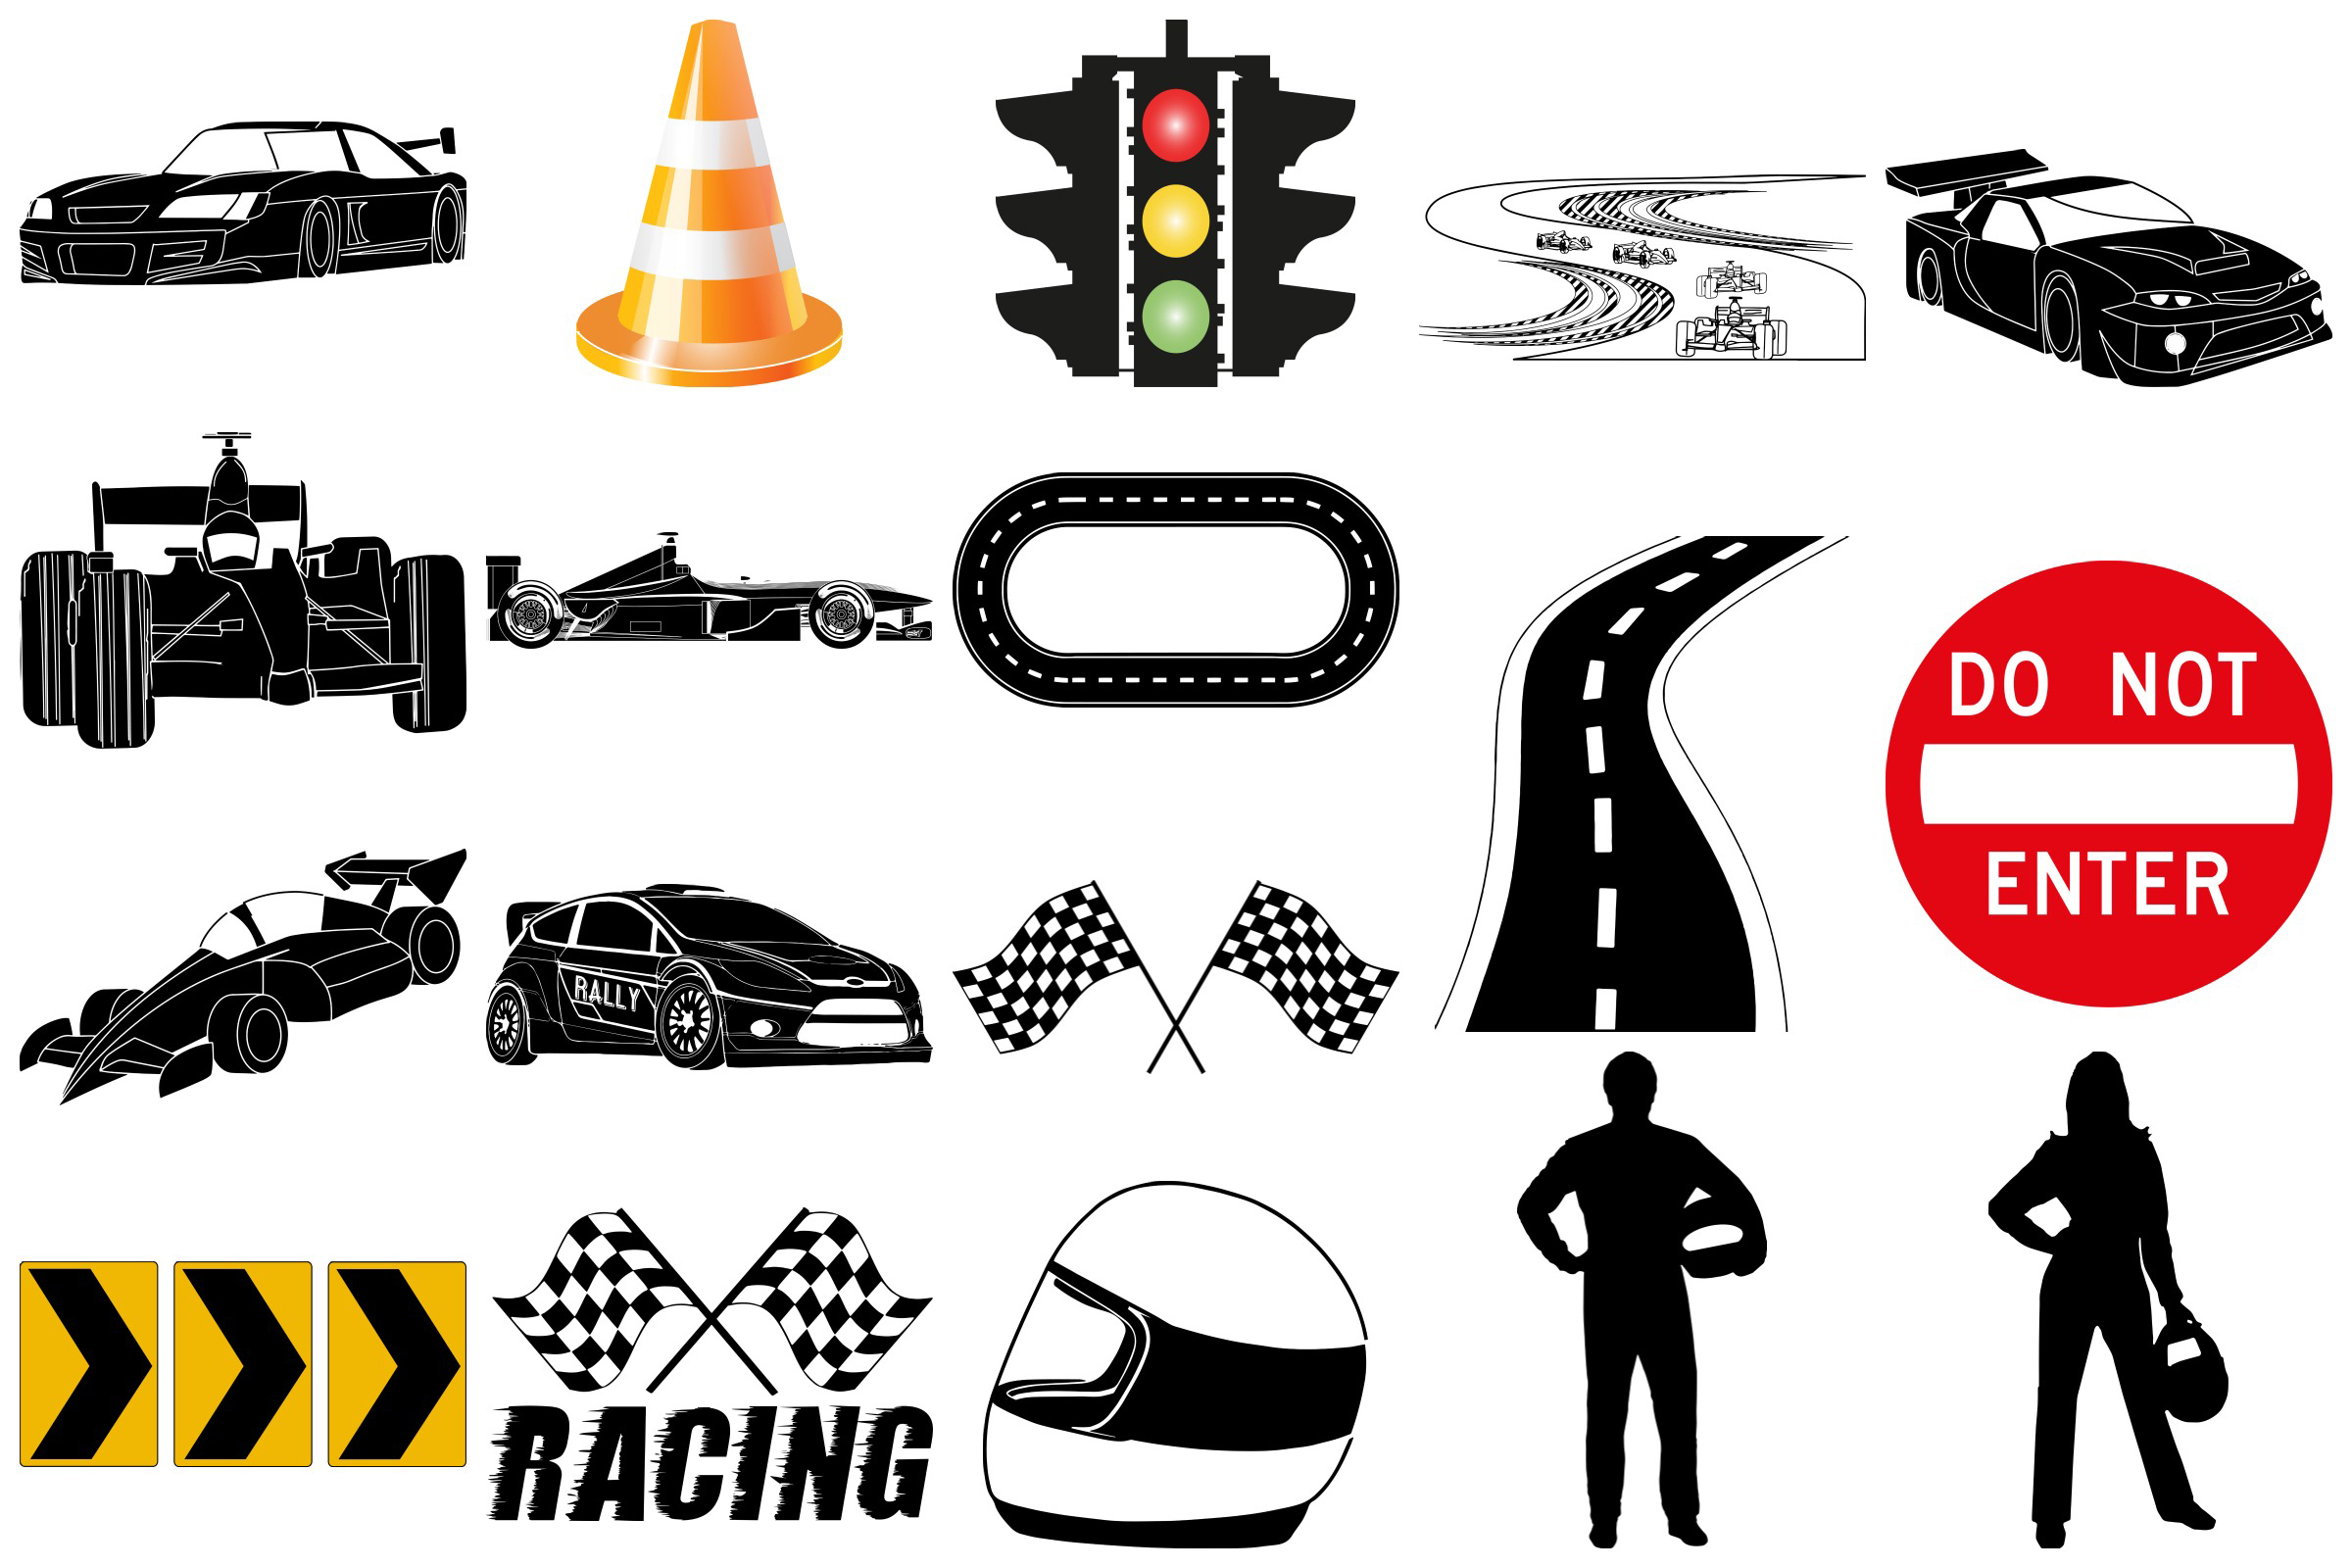 Racing, Racecars & Elements, Vector AI EPS and Png example image 2